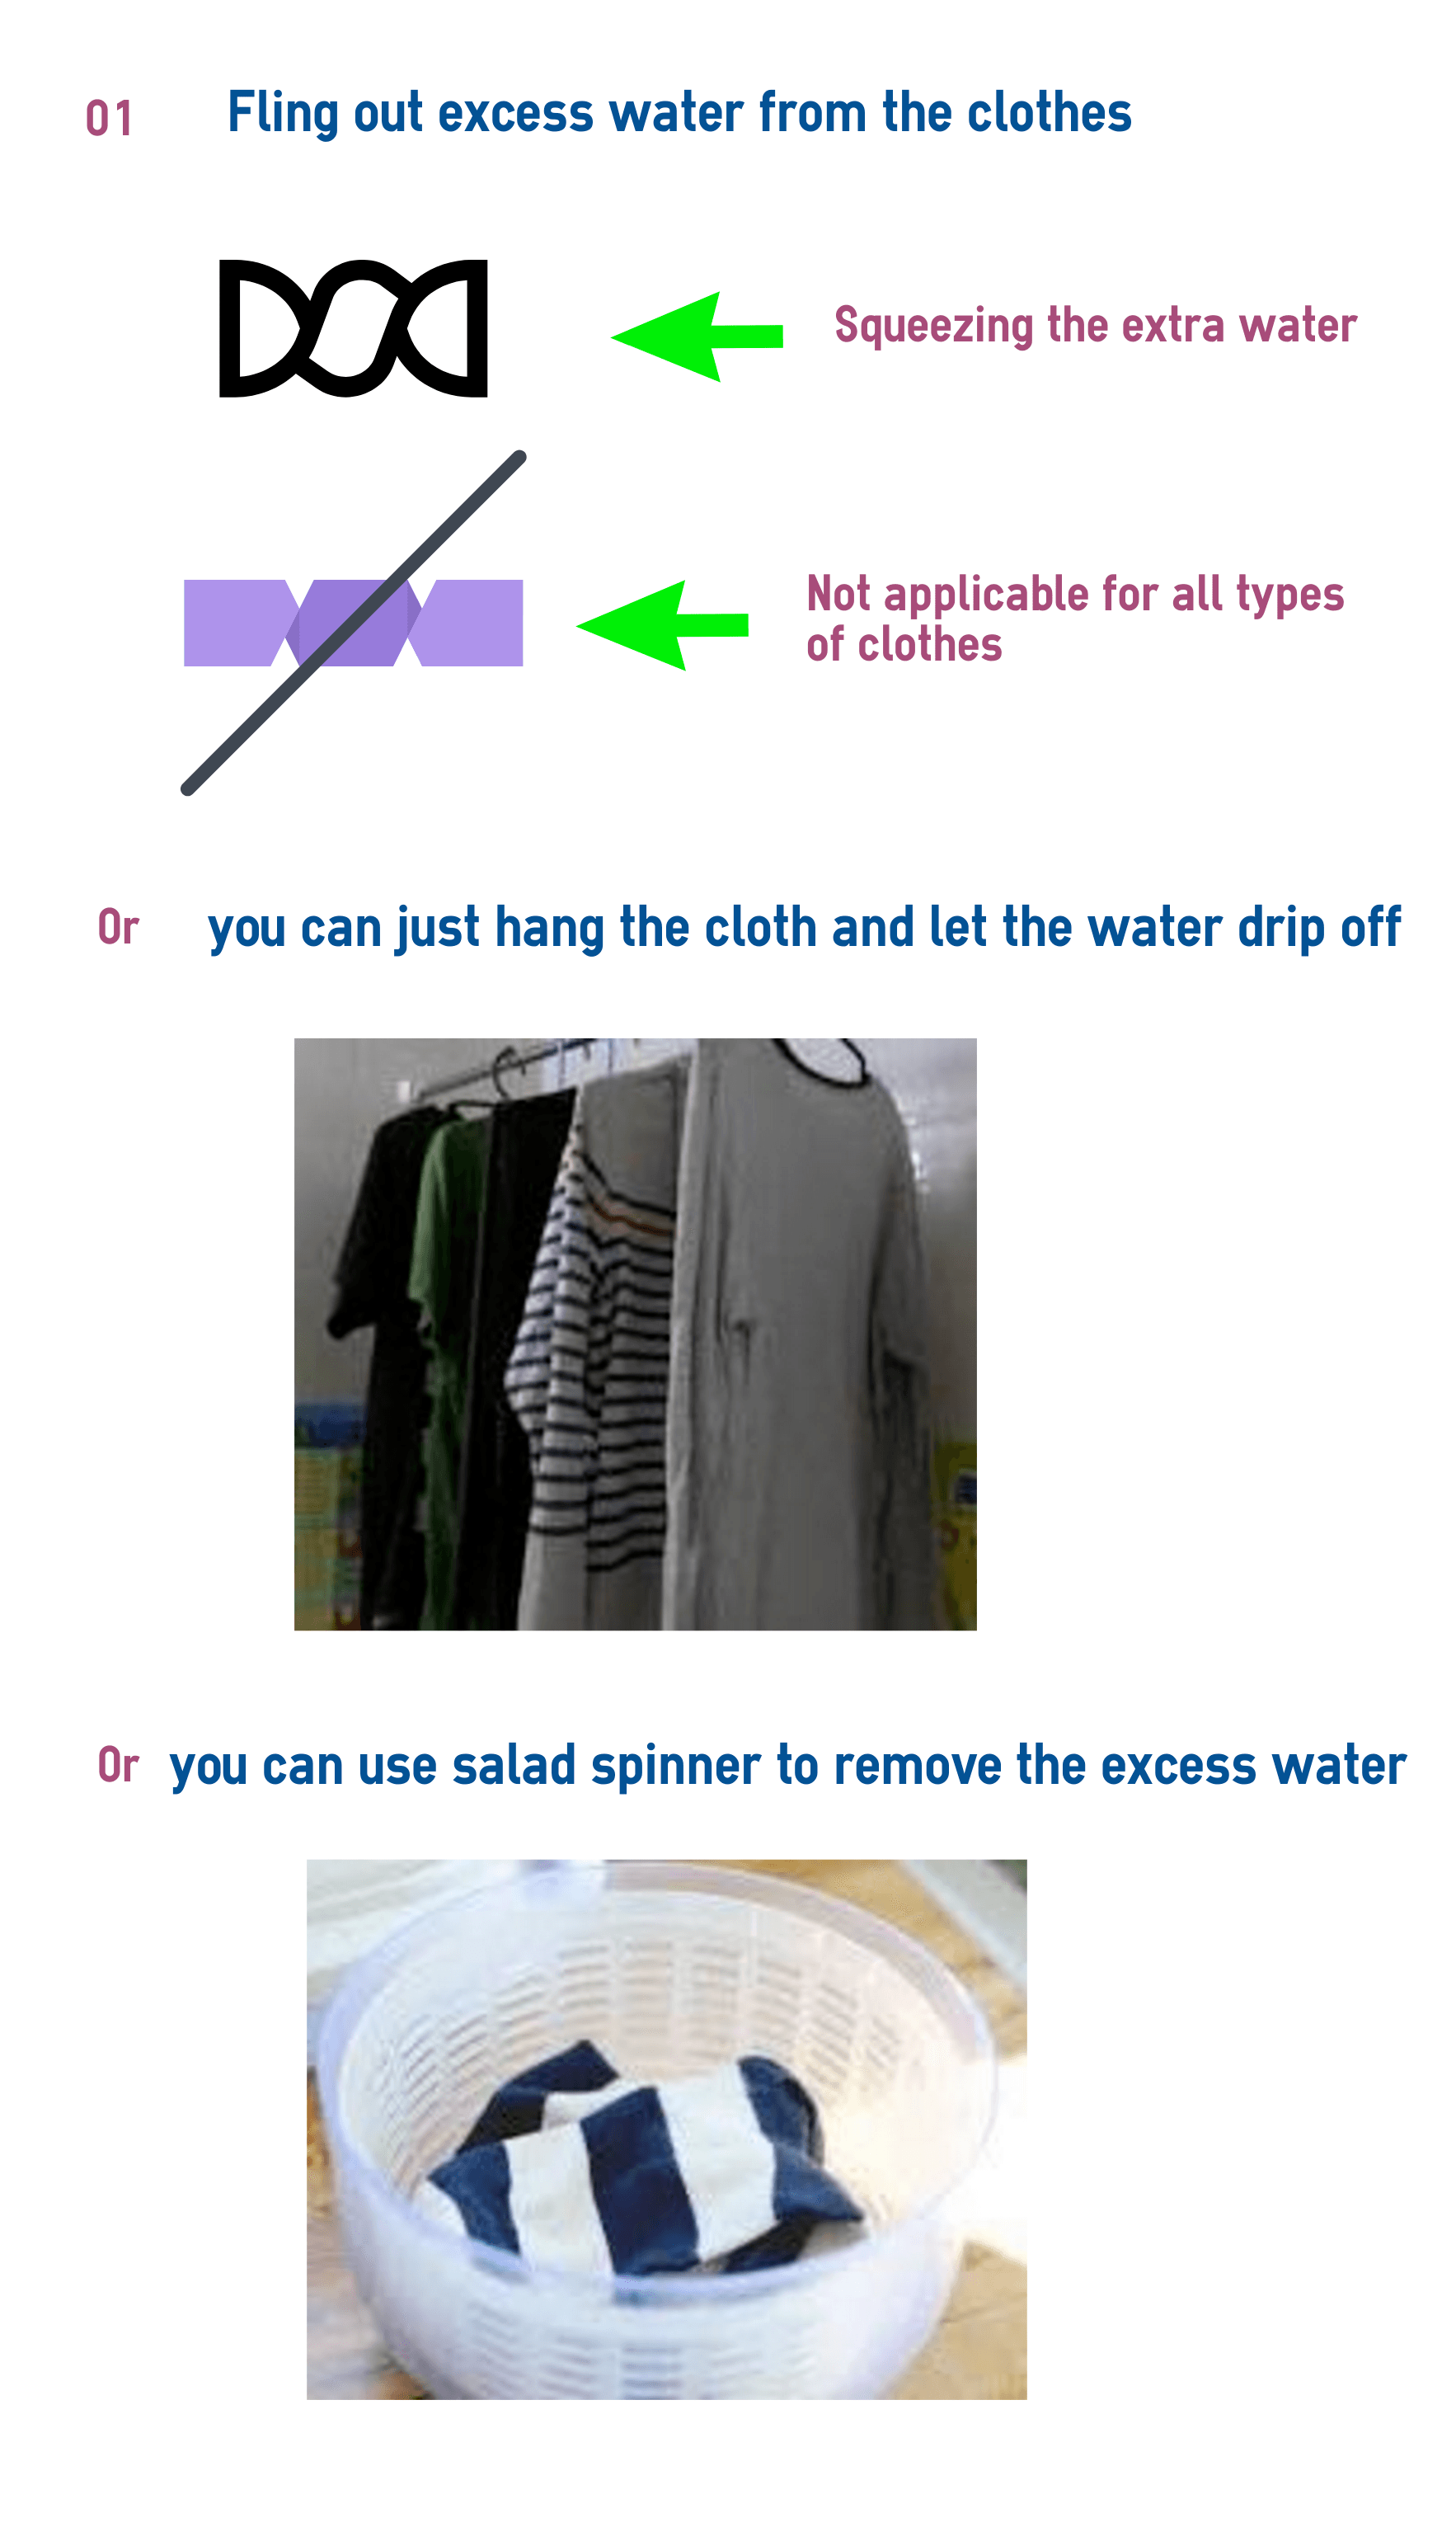 Fling out excess water from the clothes